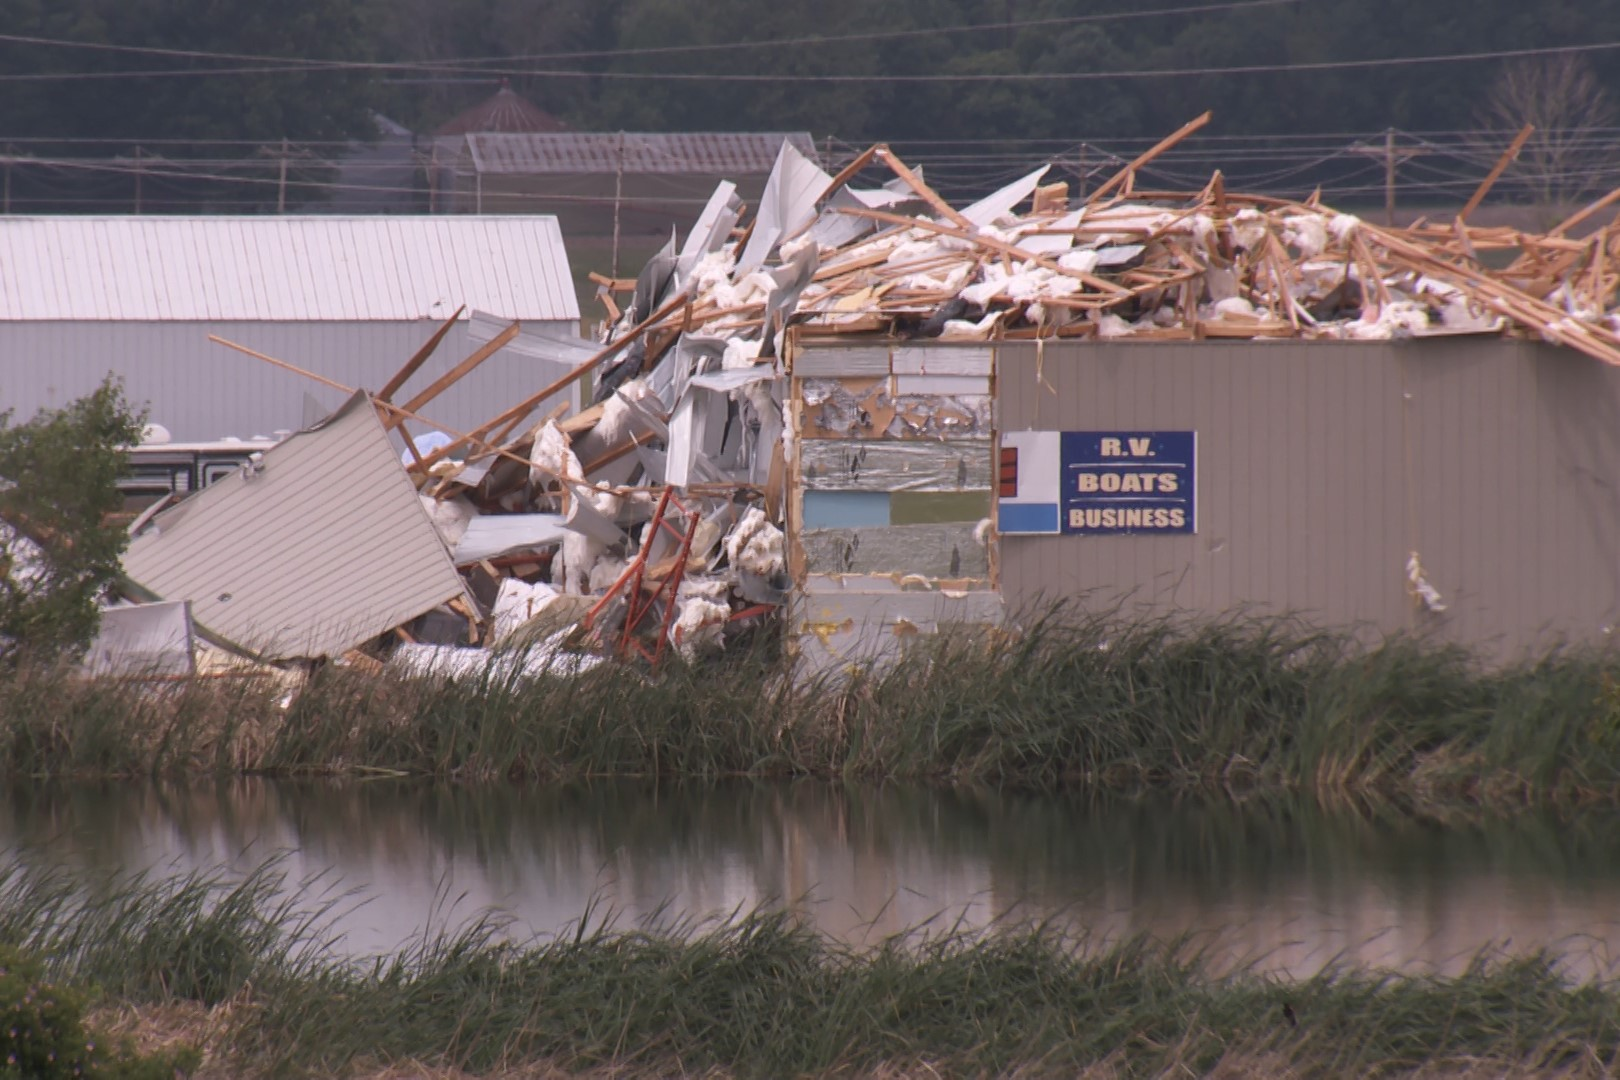 Damage to a building in Ellettsville following severe weather.